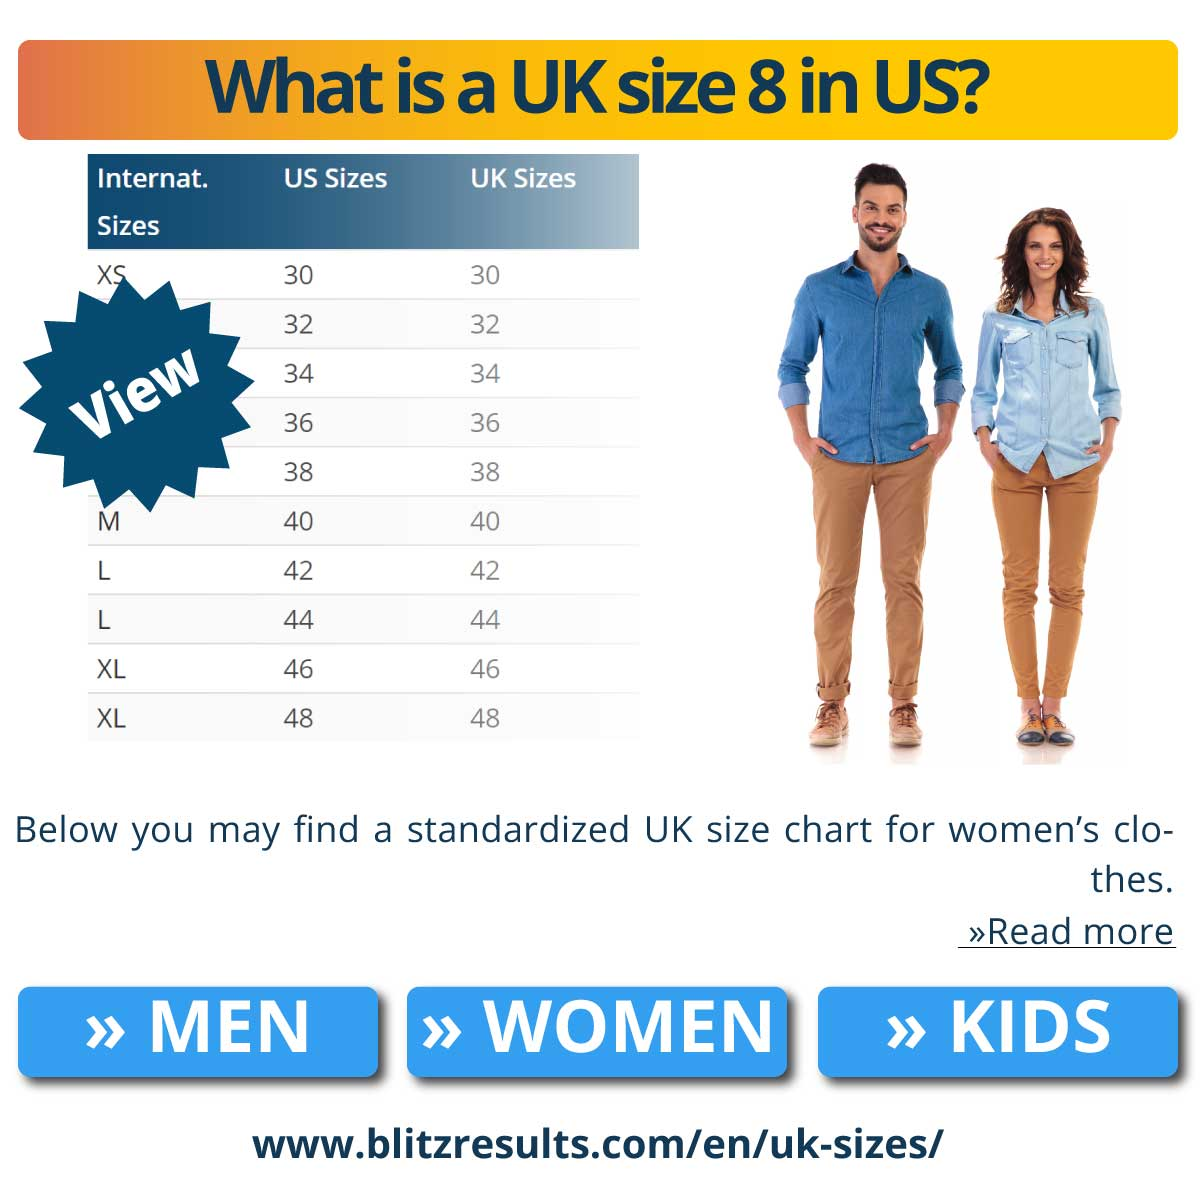 What is a UK size 8 in US?